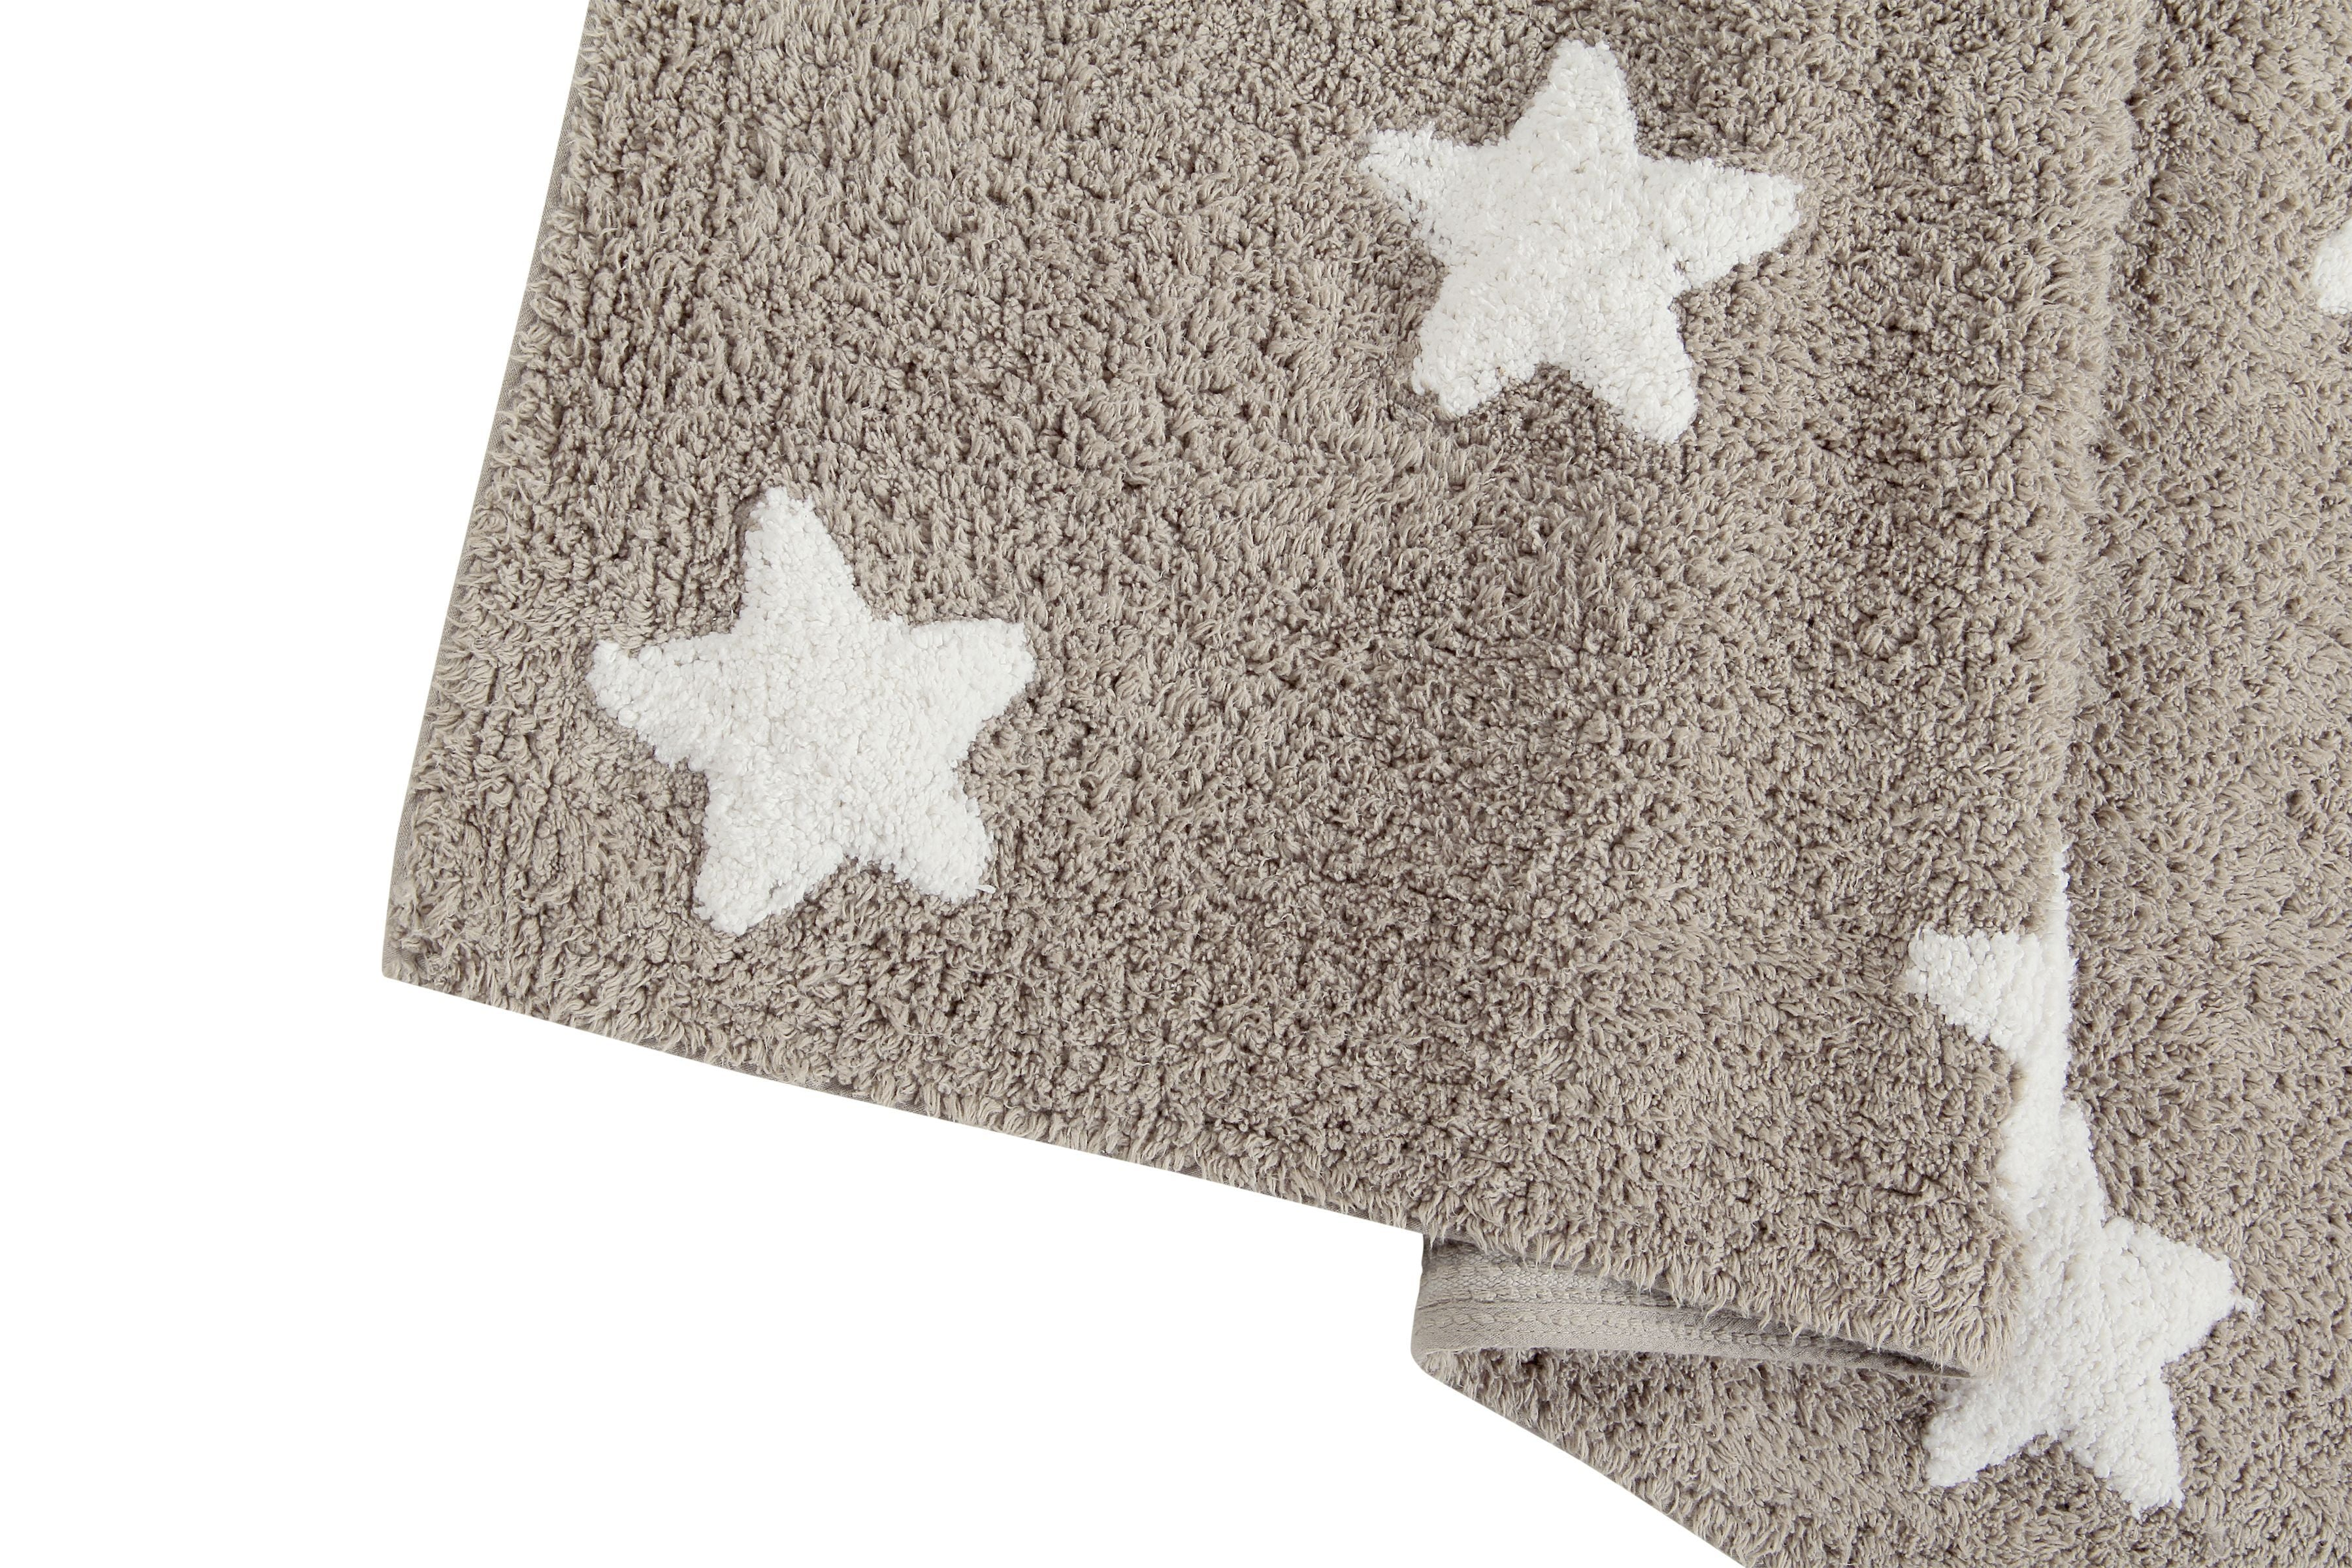 Stars Rug in Linen & White design by Lorena Canals